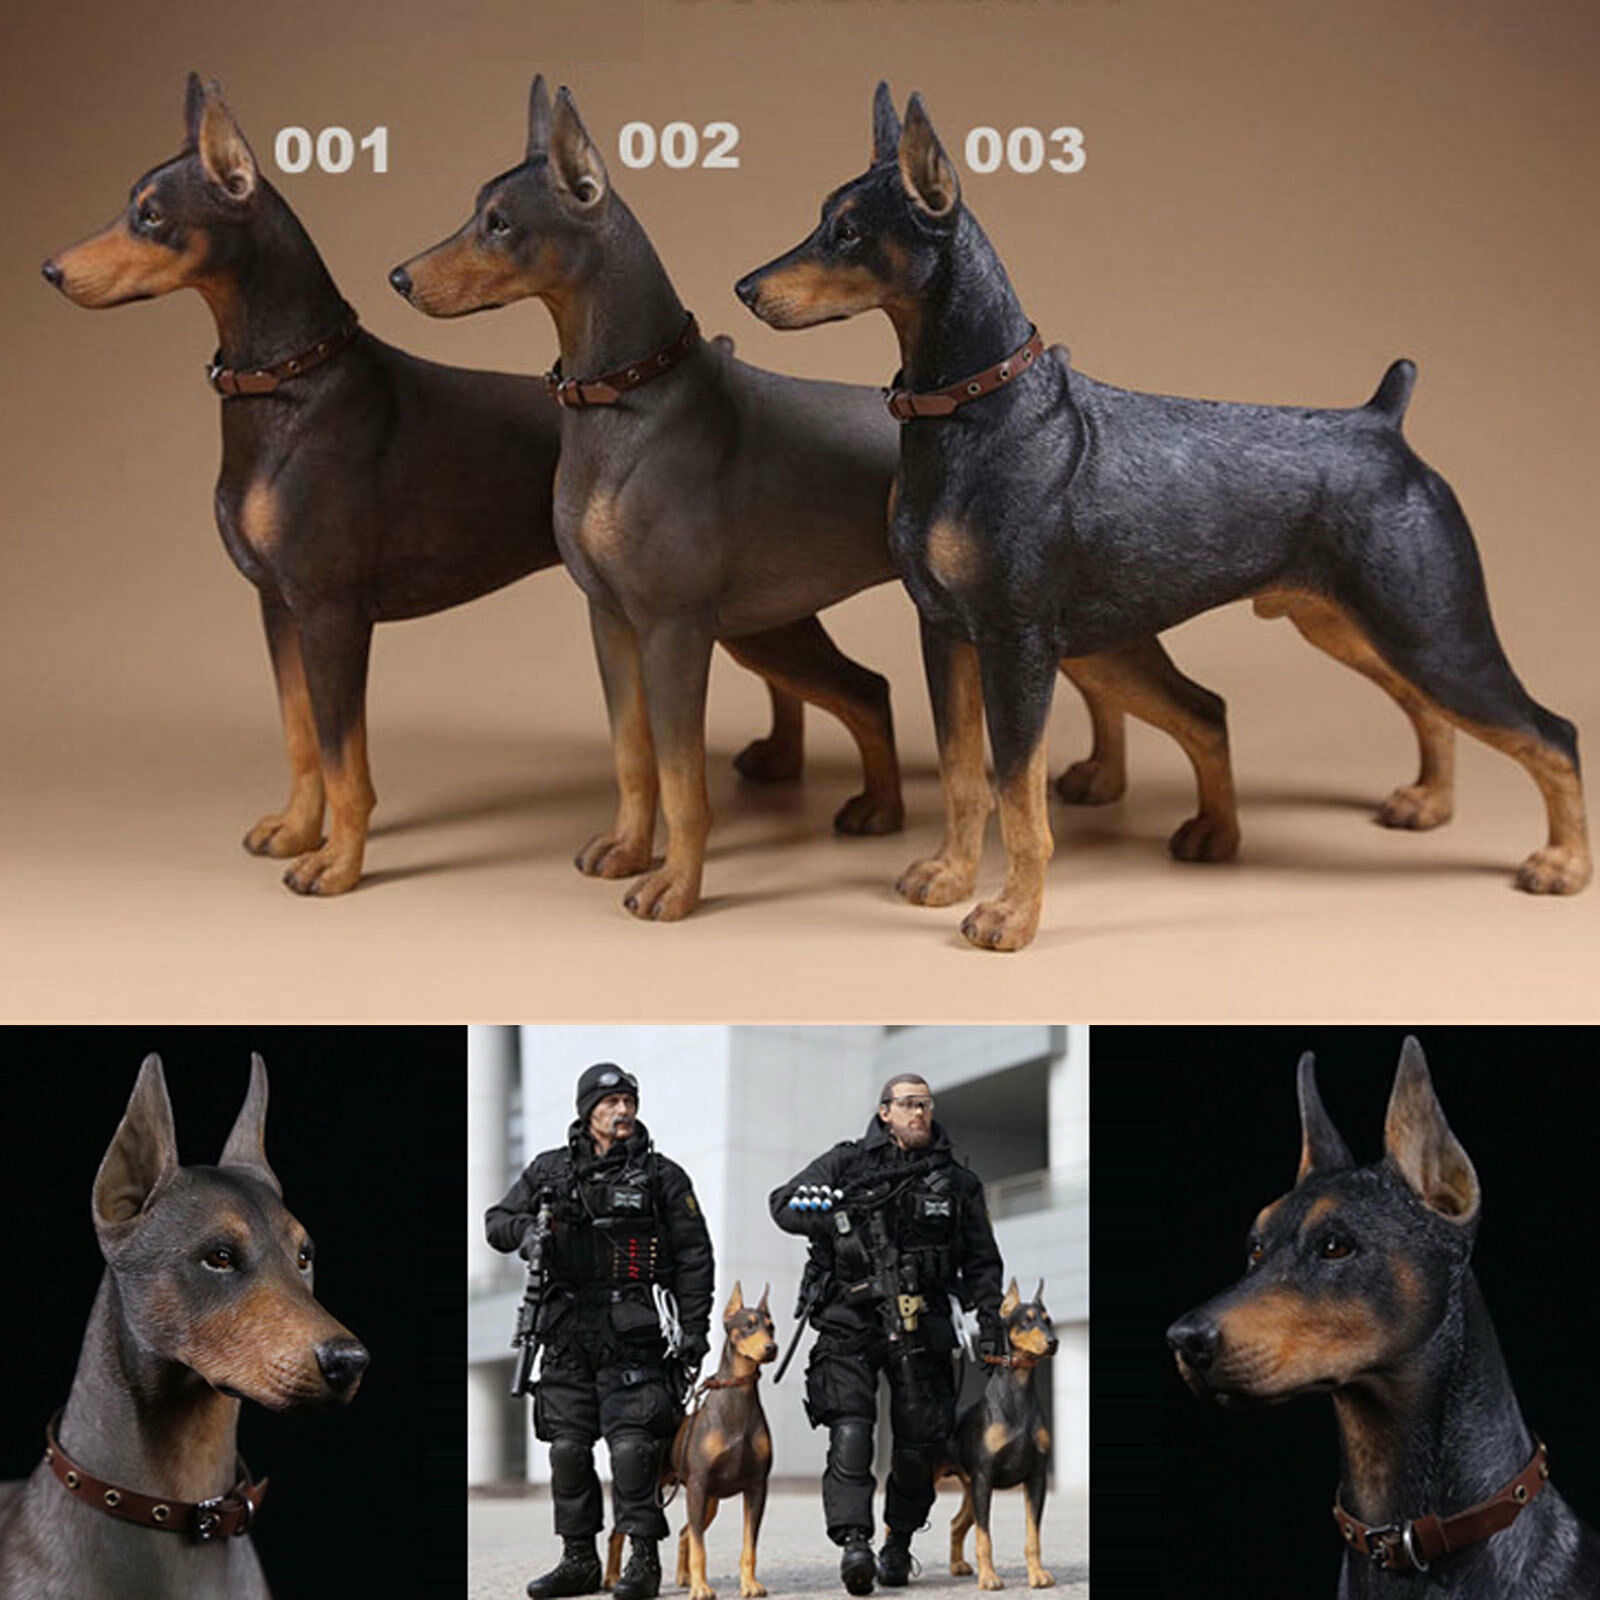 1 6 Scale Mr.Z Animal Toys Doberman Resin Figure 3 Coloree Model Decoration Gift